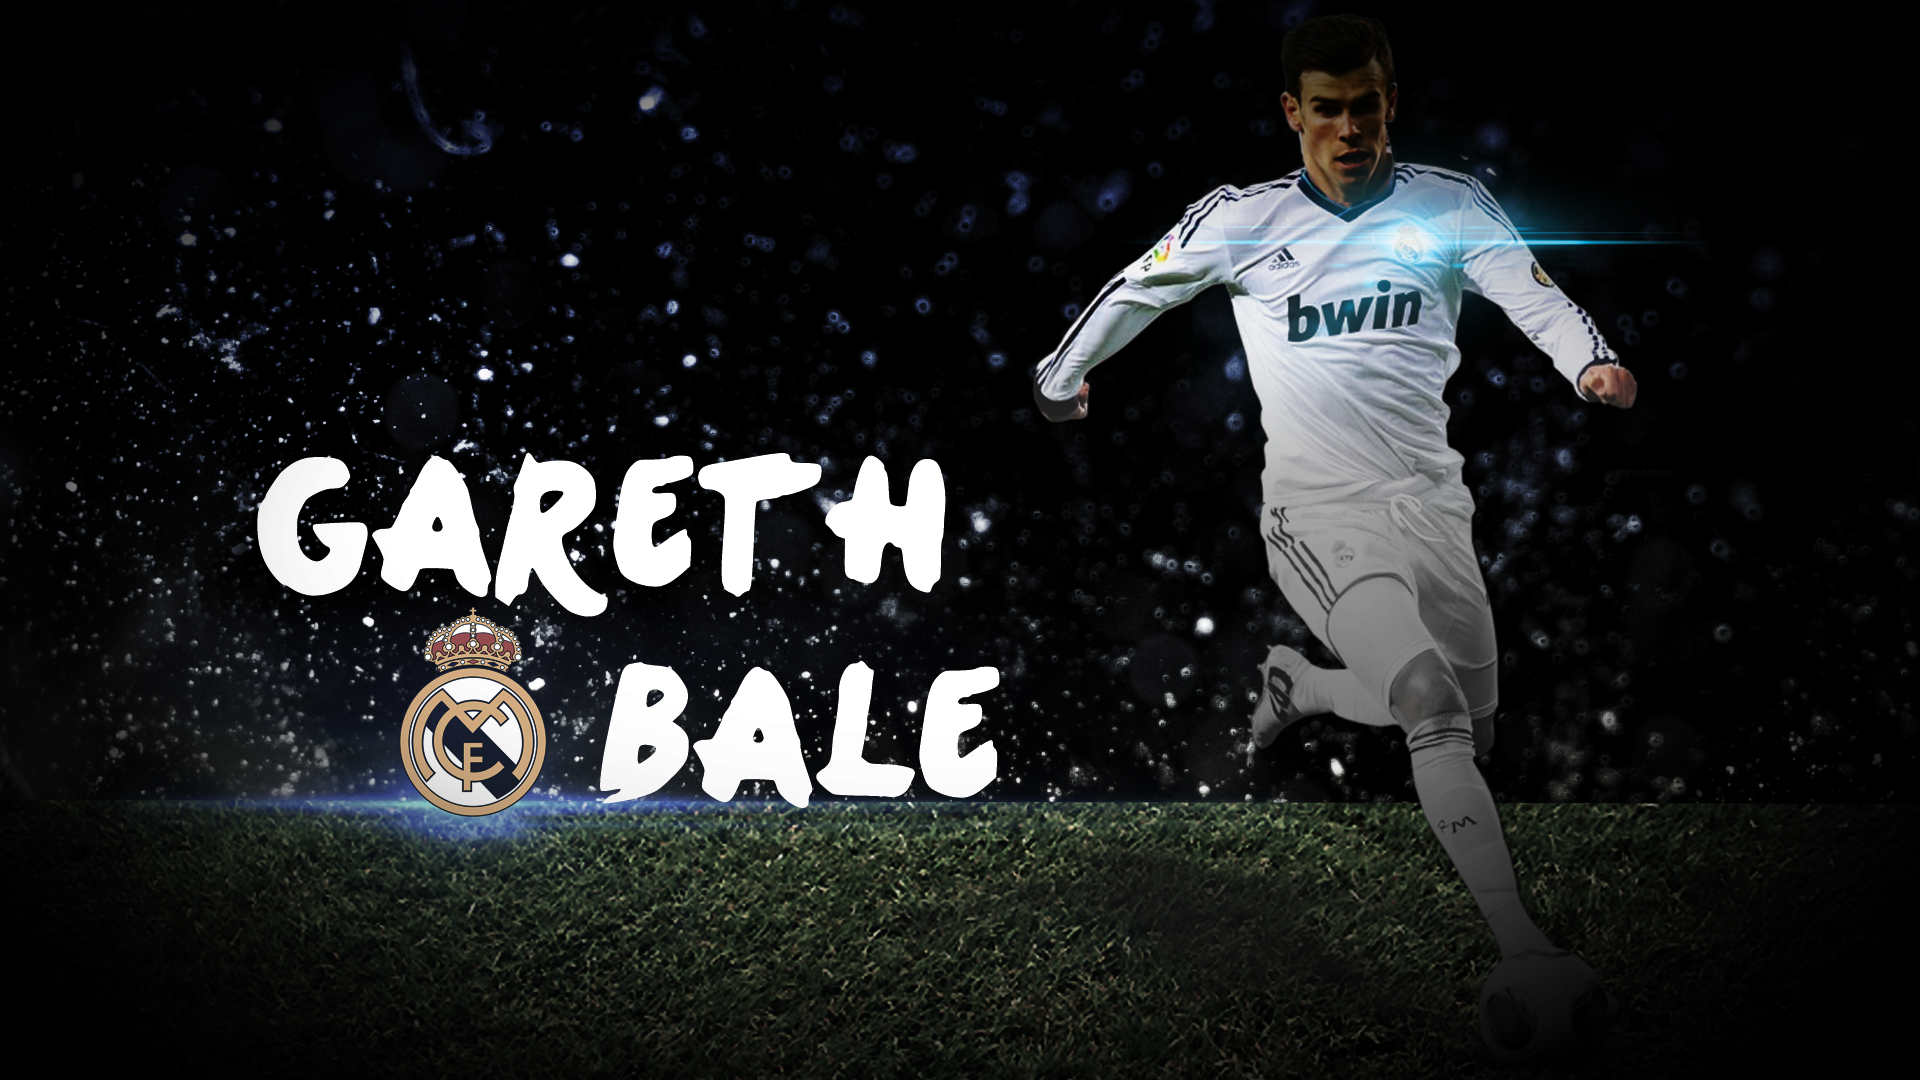 Gareth Bale High Resolution wallpapers